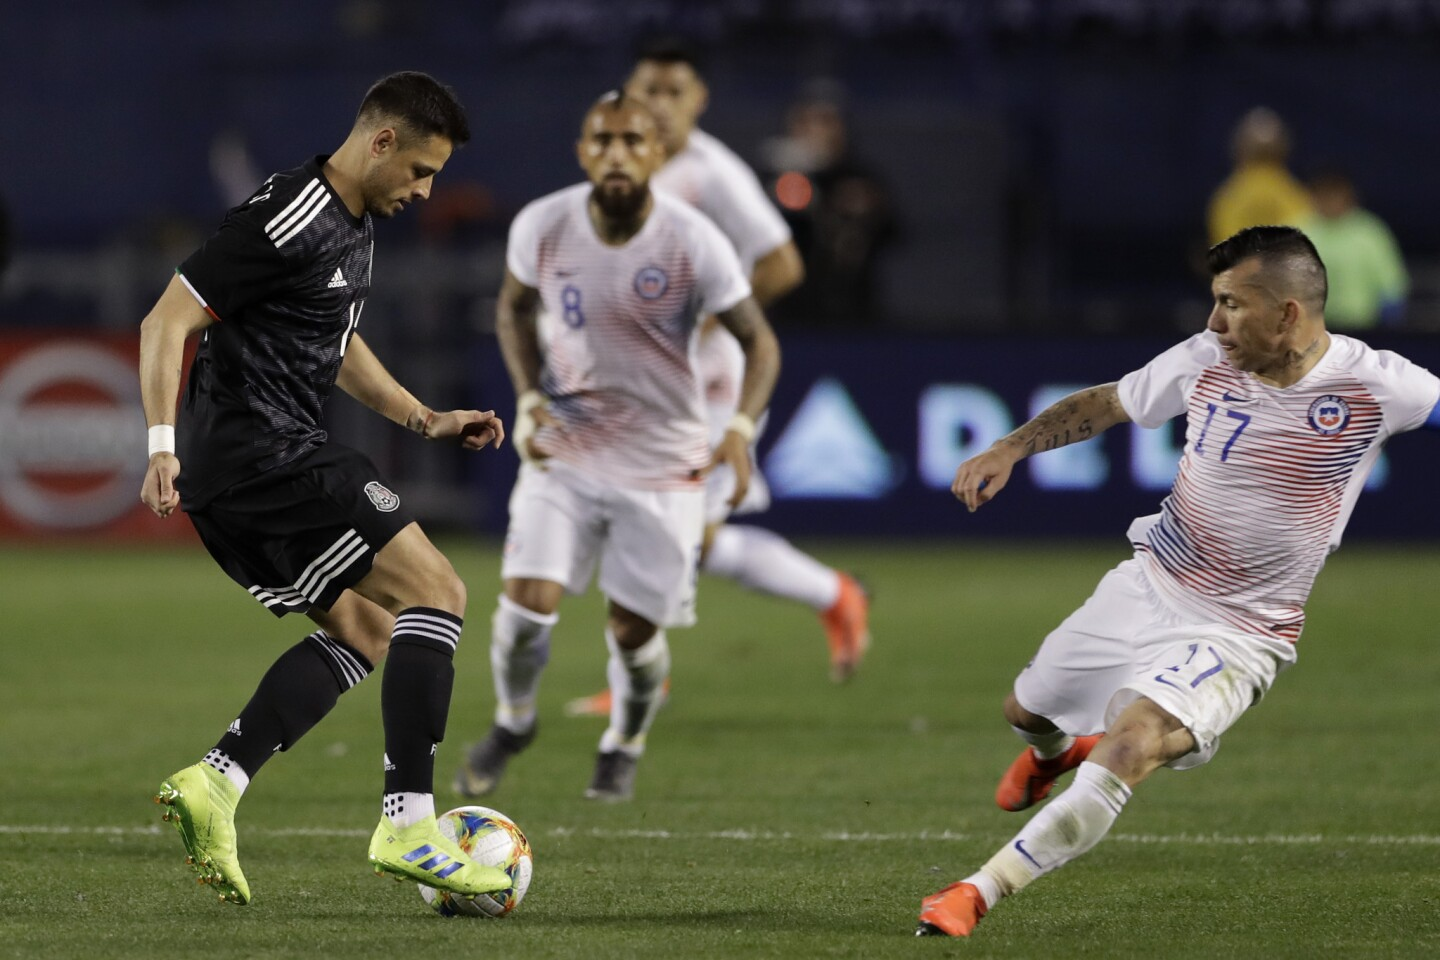 Mexico's Javier Hernandez, left, dribbles the ball as Chile's Gary Mendel, right, defends during the second half of an international friendly soccer match Friday, March 22, 2019, in San Diego. (AP Photo/Gregory Bull)